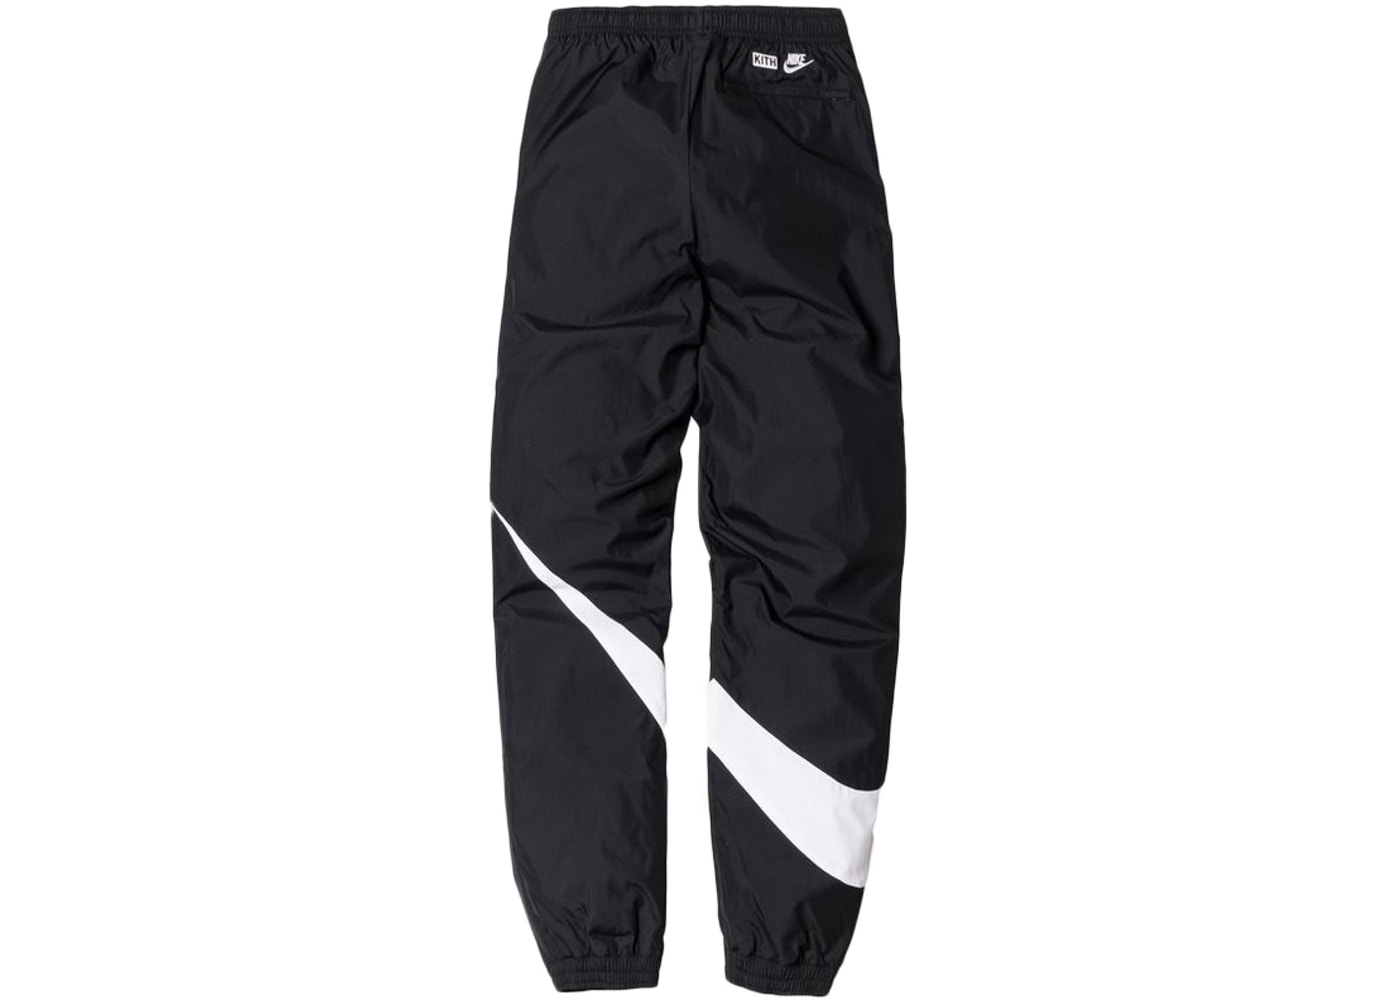 24f9d977403e Kith Nike Big Swoosh Pants Black - FW17